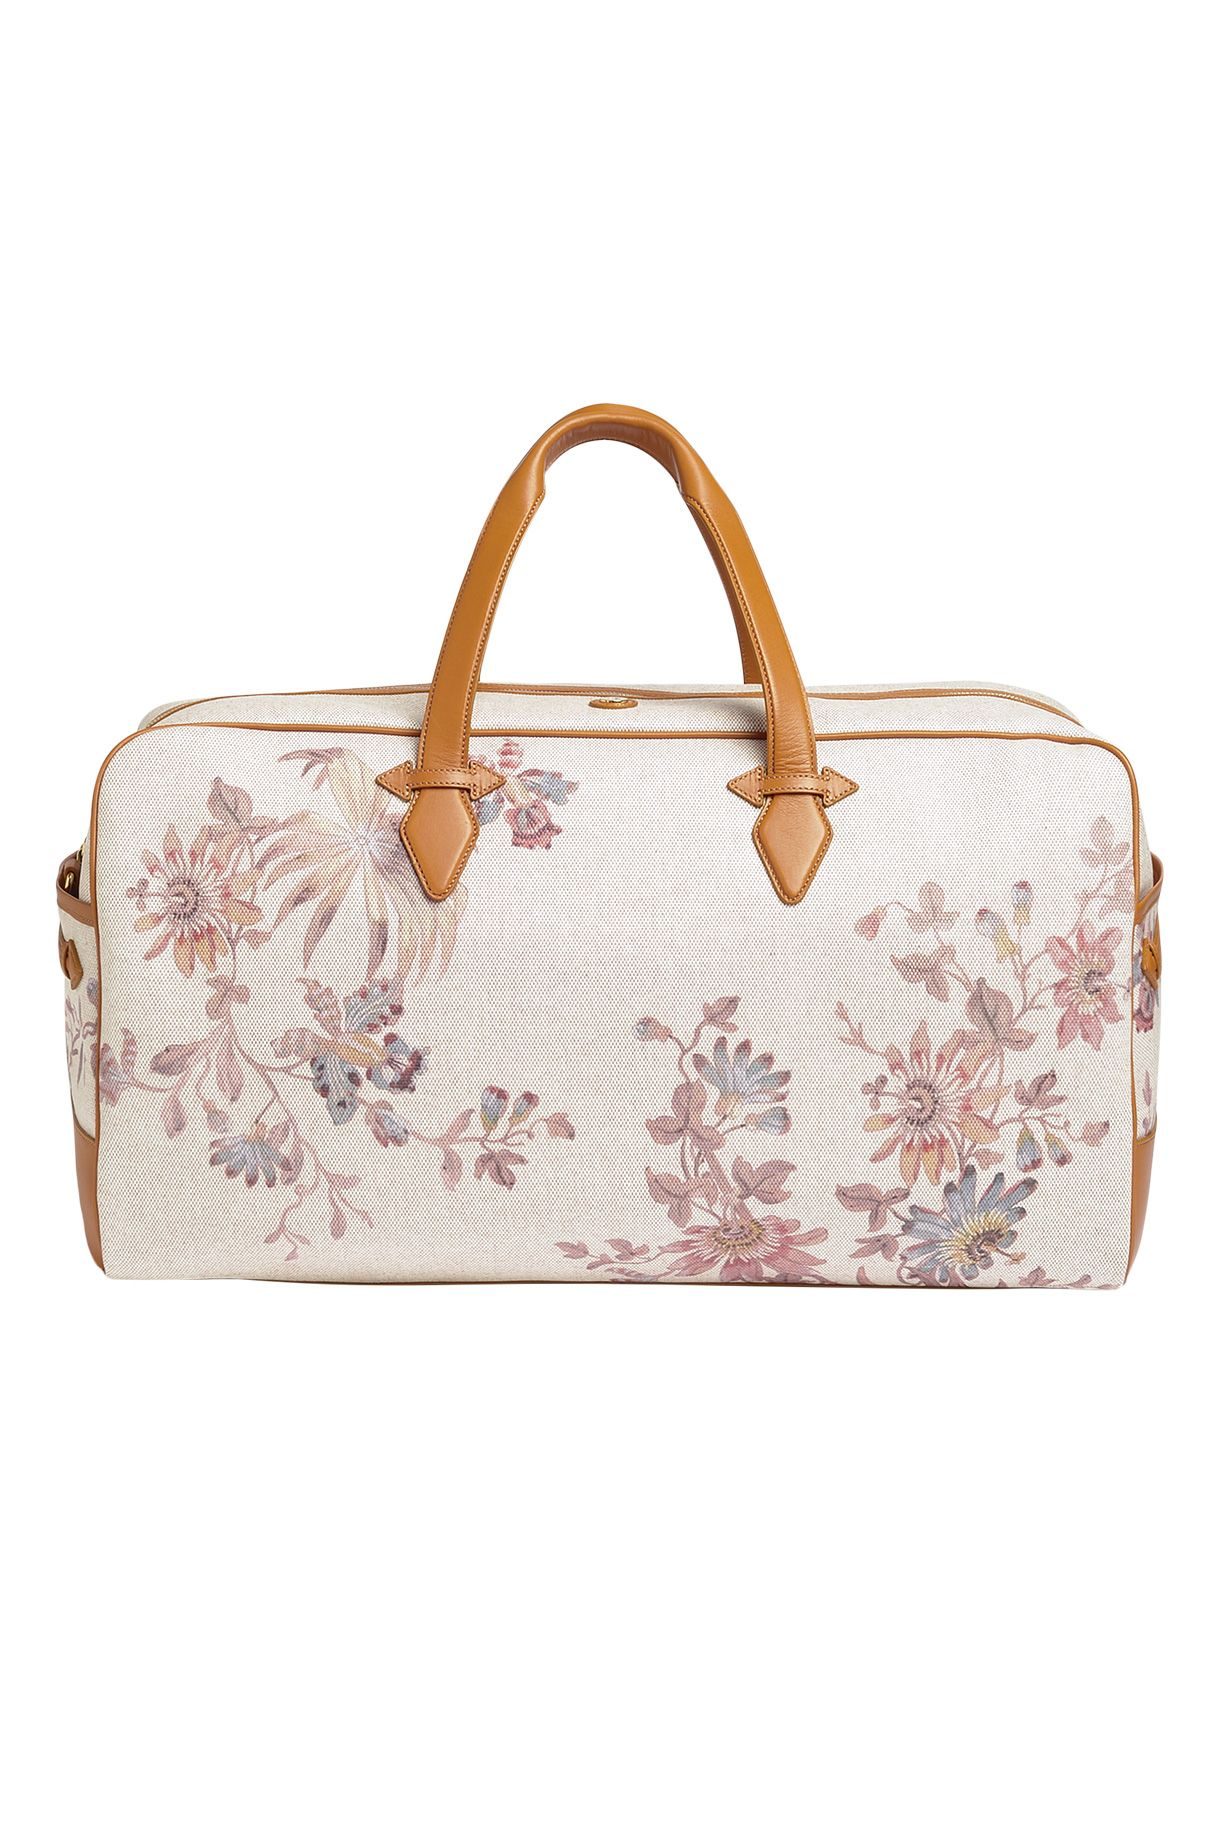 """<p>Traveling by car means no overhead constraints or worry about damaging (or losing) your luggage. Make the most ofit with a pretty designer piece.</p><p><em data-redactor-tag=""""em"""" data-verified=""""redactor"""">Paravel Scout Floral Grand Tour, $445; </em><a href=""""https://tourparavel.com/products/scout-floral-grand-tour/scout"""" target=""""_blank"""" data-tracking-id=""""recirc-text-link""""><em data-redactor-tag=""""em"""" data-verified=""""redactor"""">tourparavel.com</em></a></p>"""